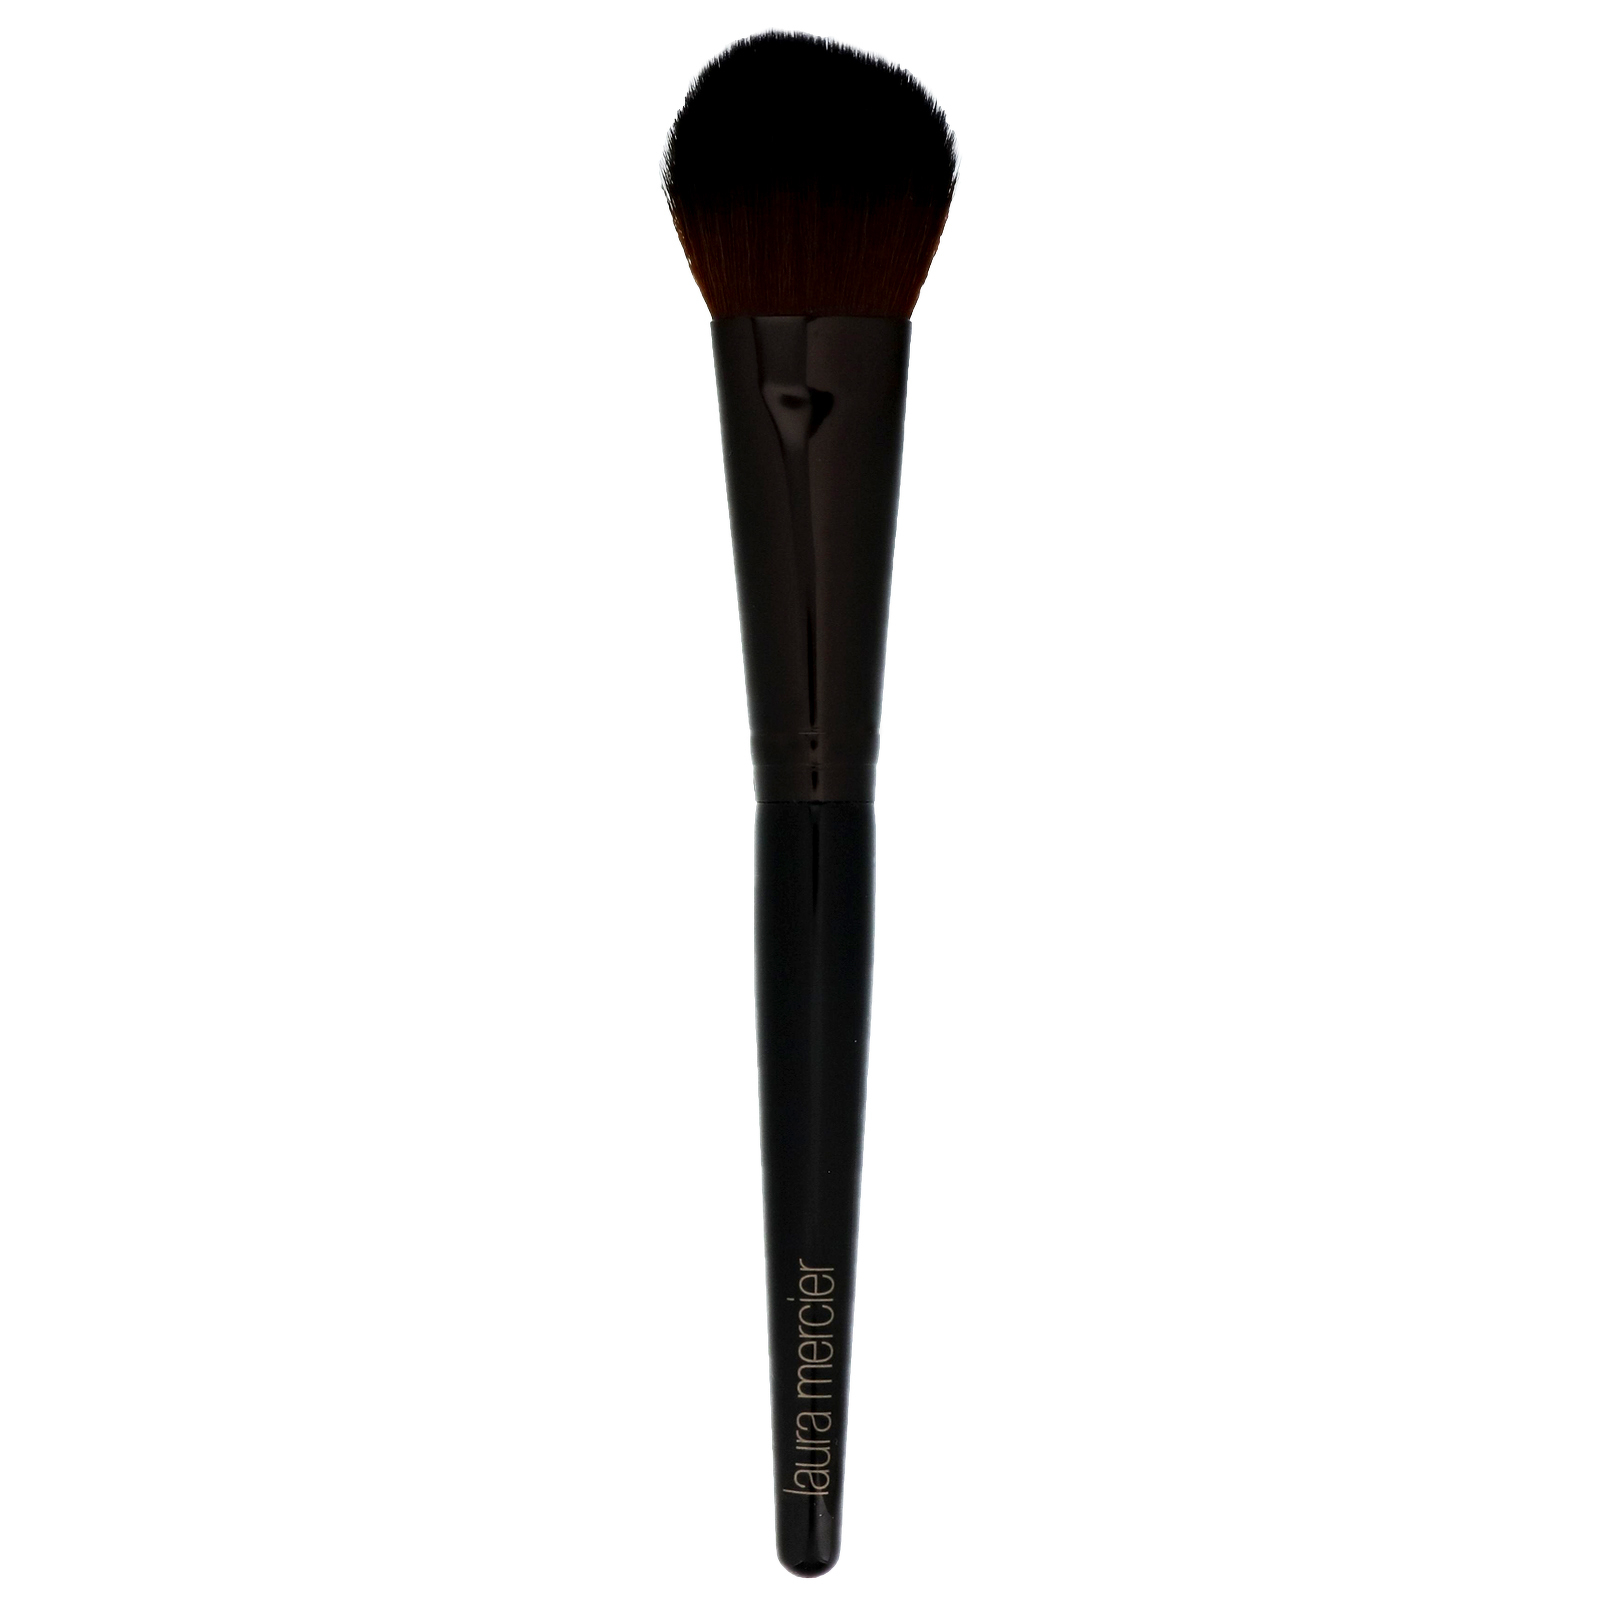 Laura Mercier Brushes & Tools Cheek Colour Brush